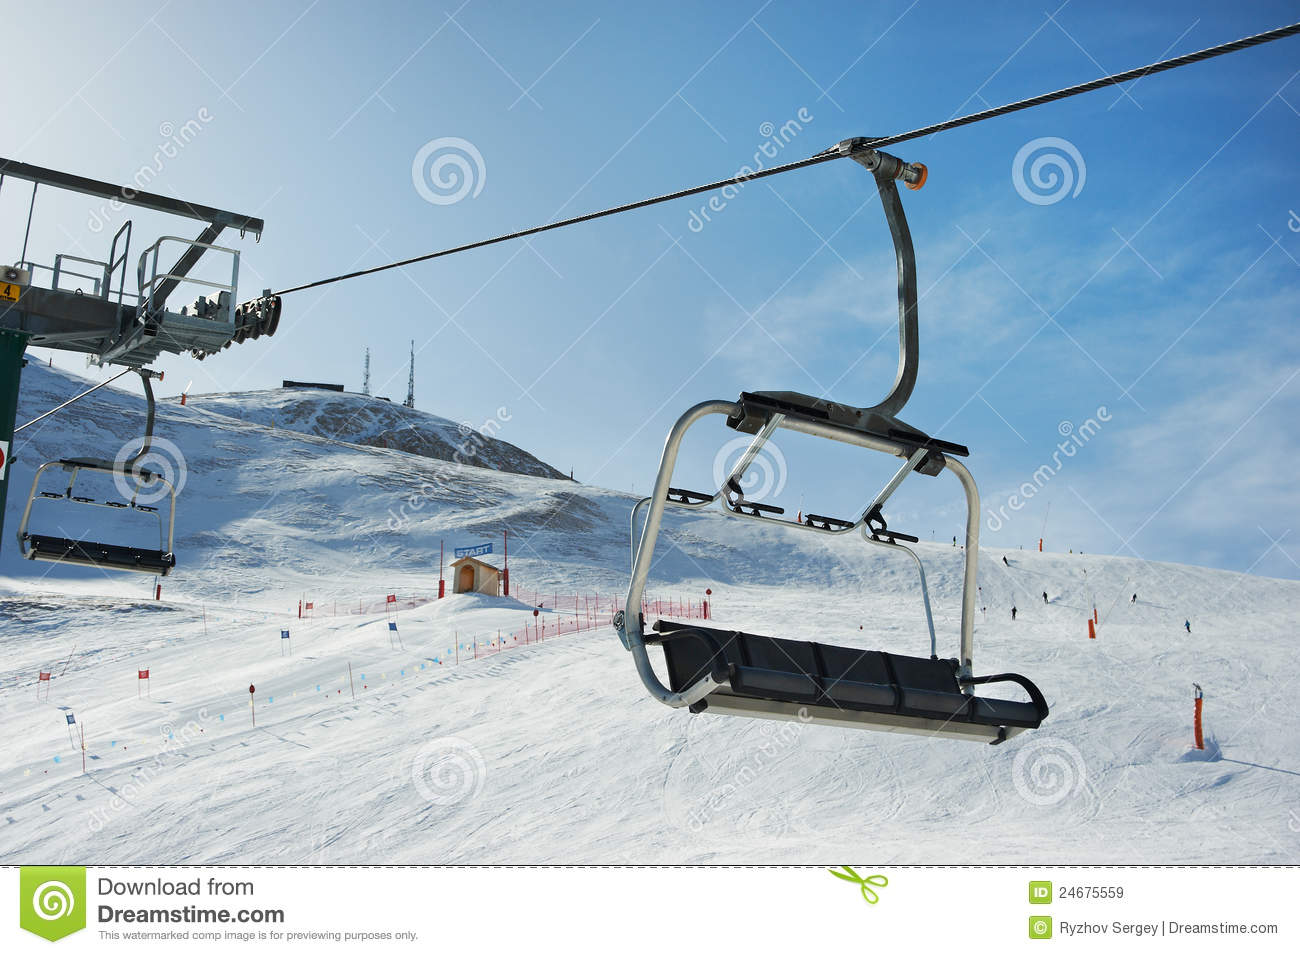 View Of The Ski Slopes And Chair Lifts